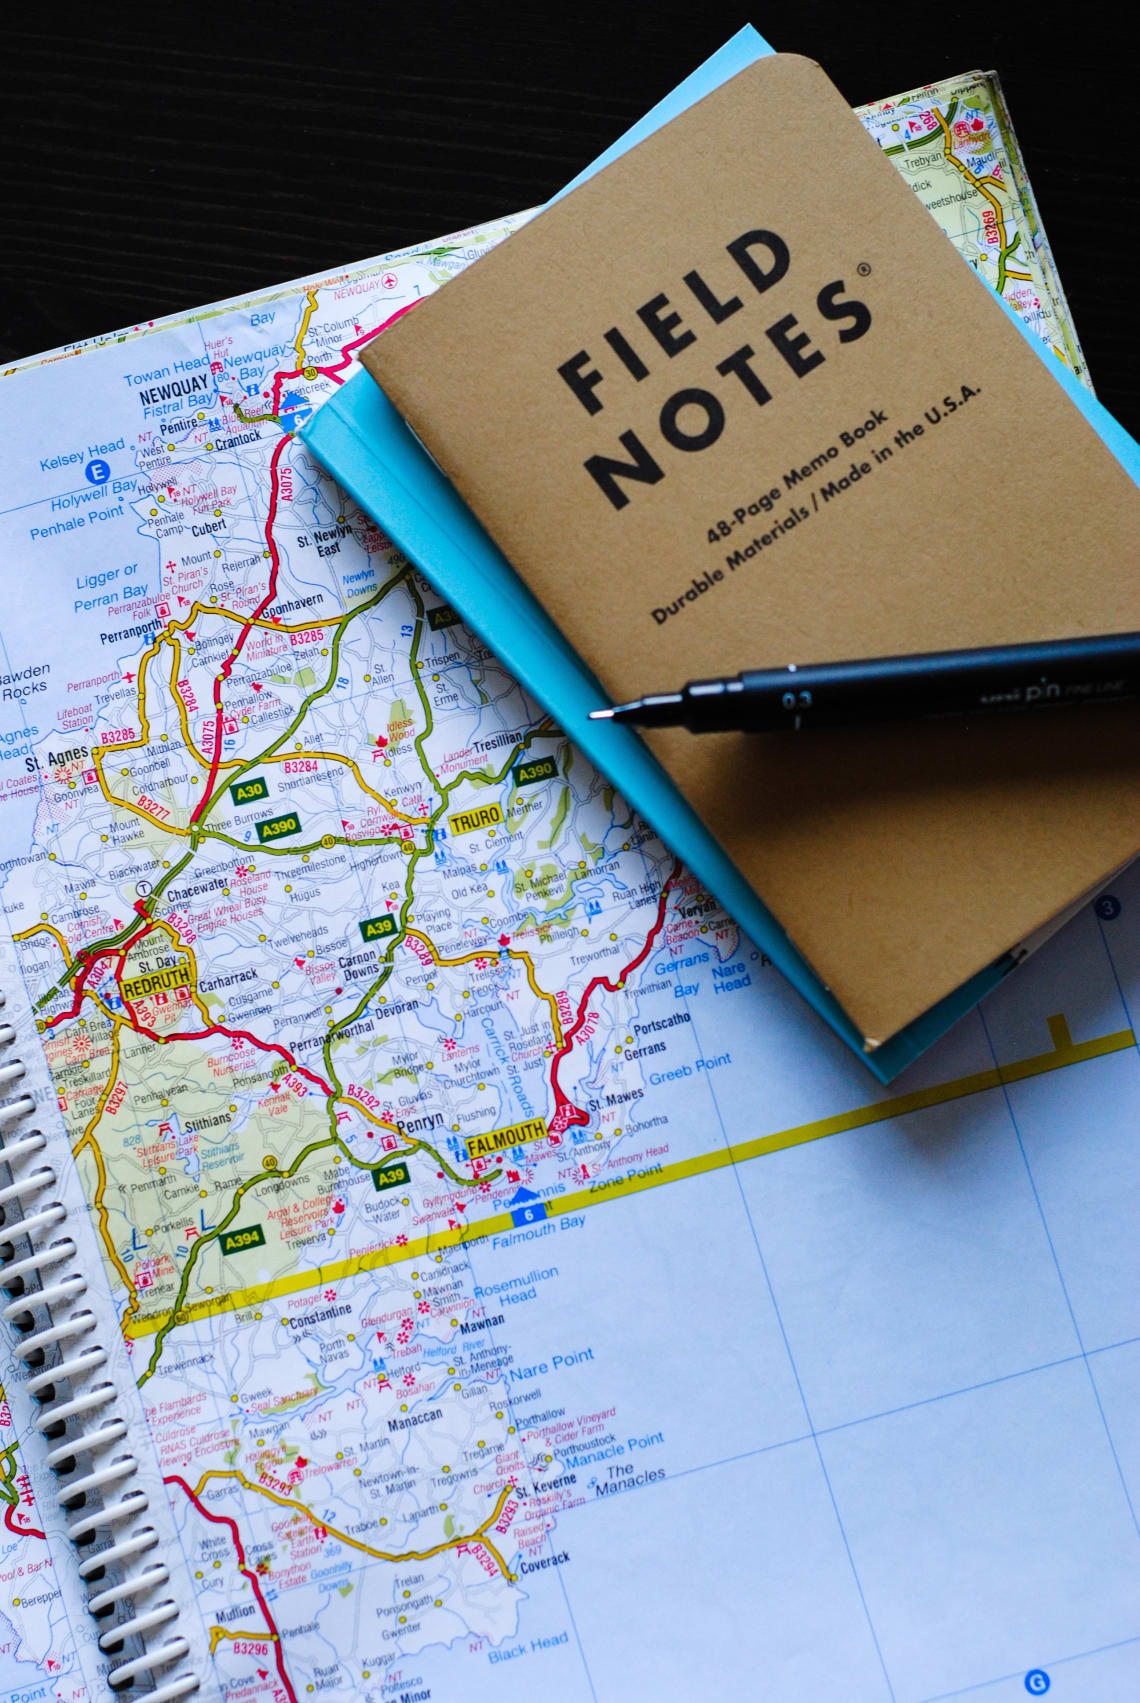 Map and notebook